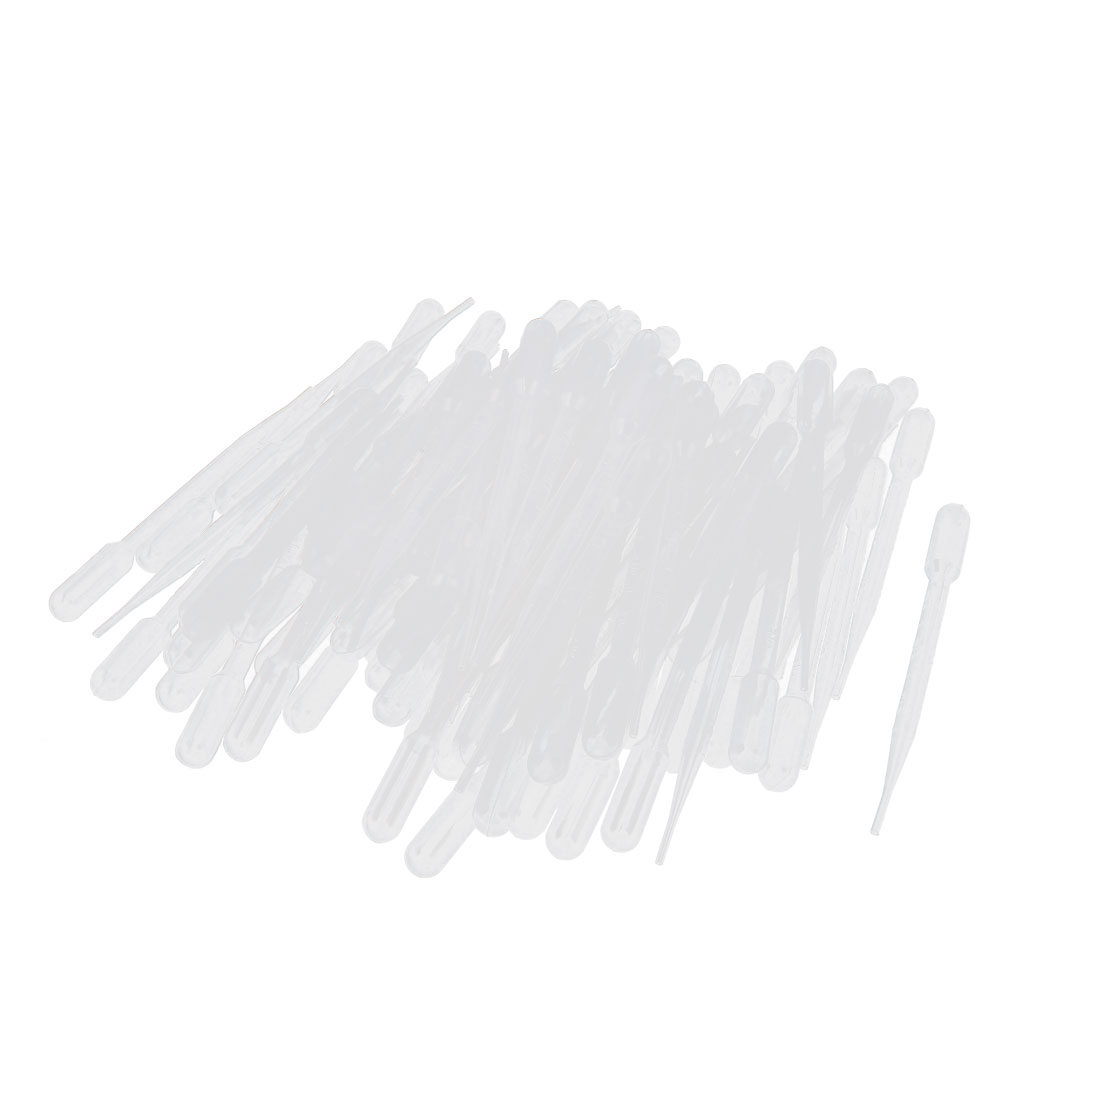 100 Pcs 3ML Disposable Plastic Eye Dropper Graduated Liquid Transfer Pipettes